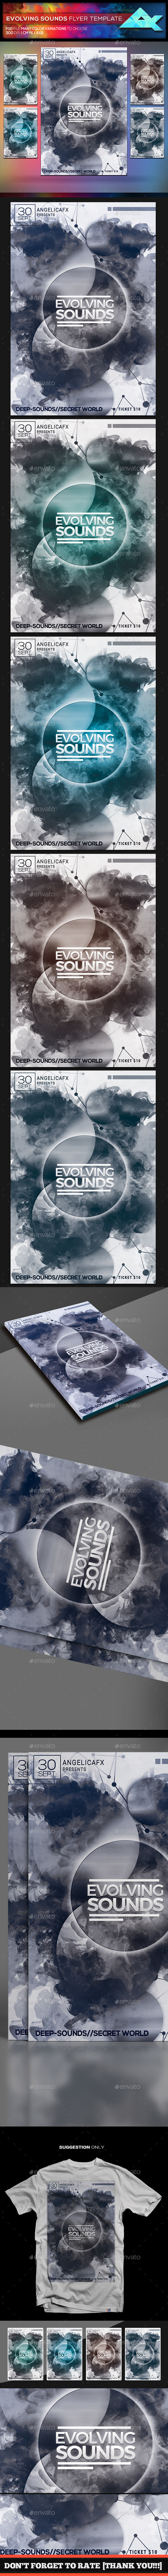 GraphicRiver Evolving Sounds Flyer Template 20364899